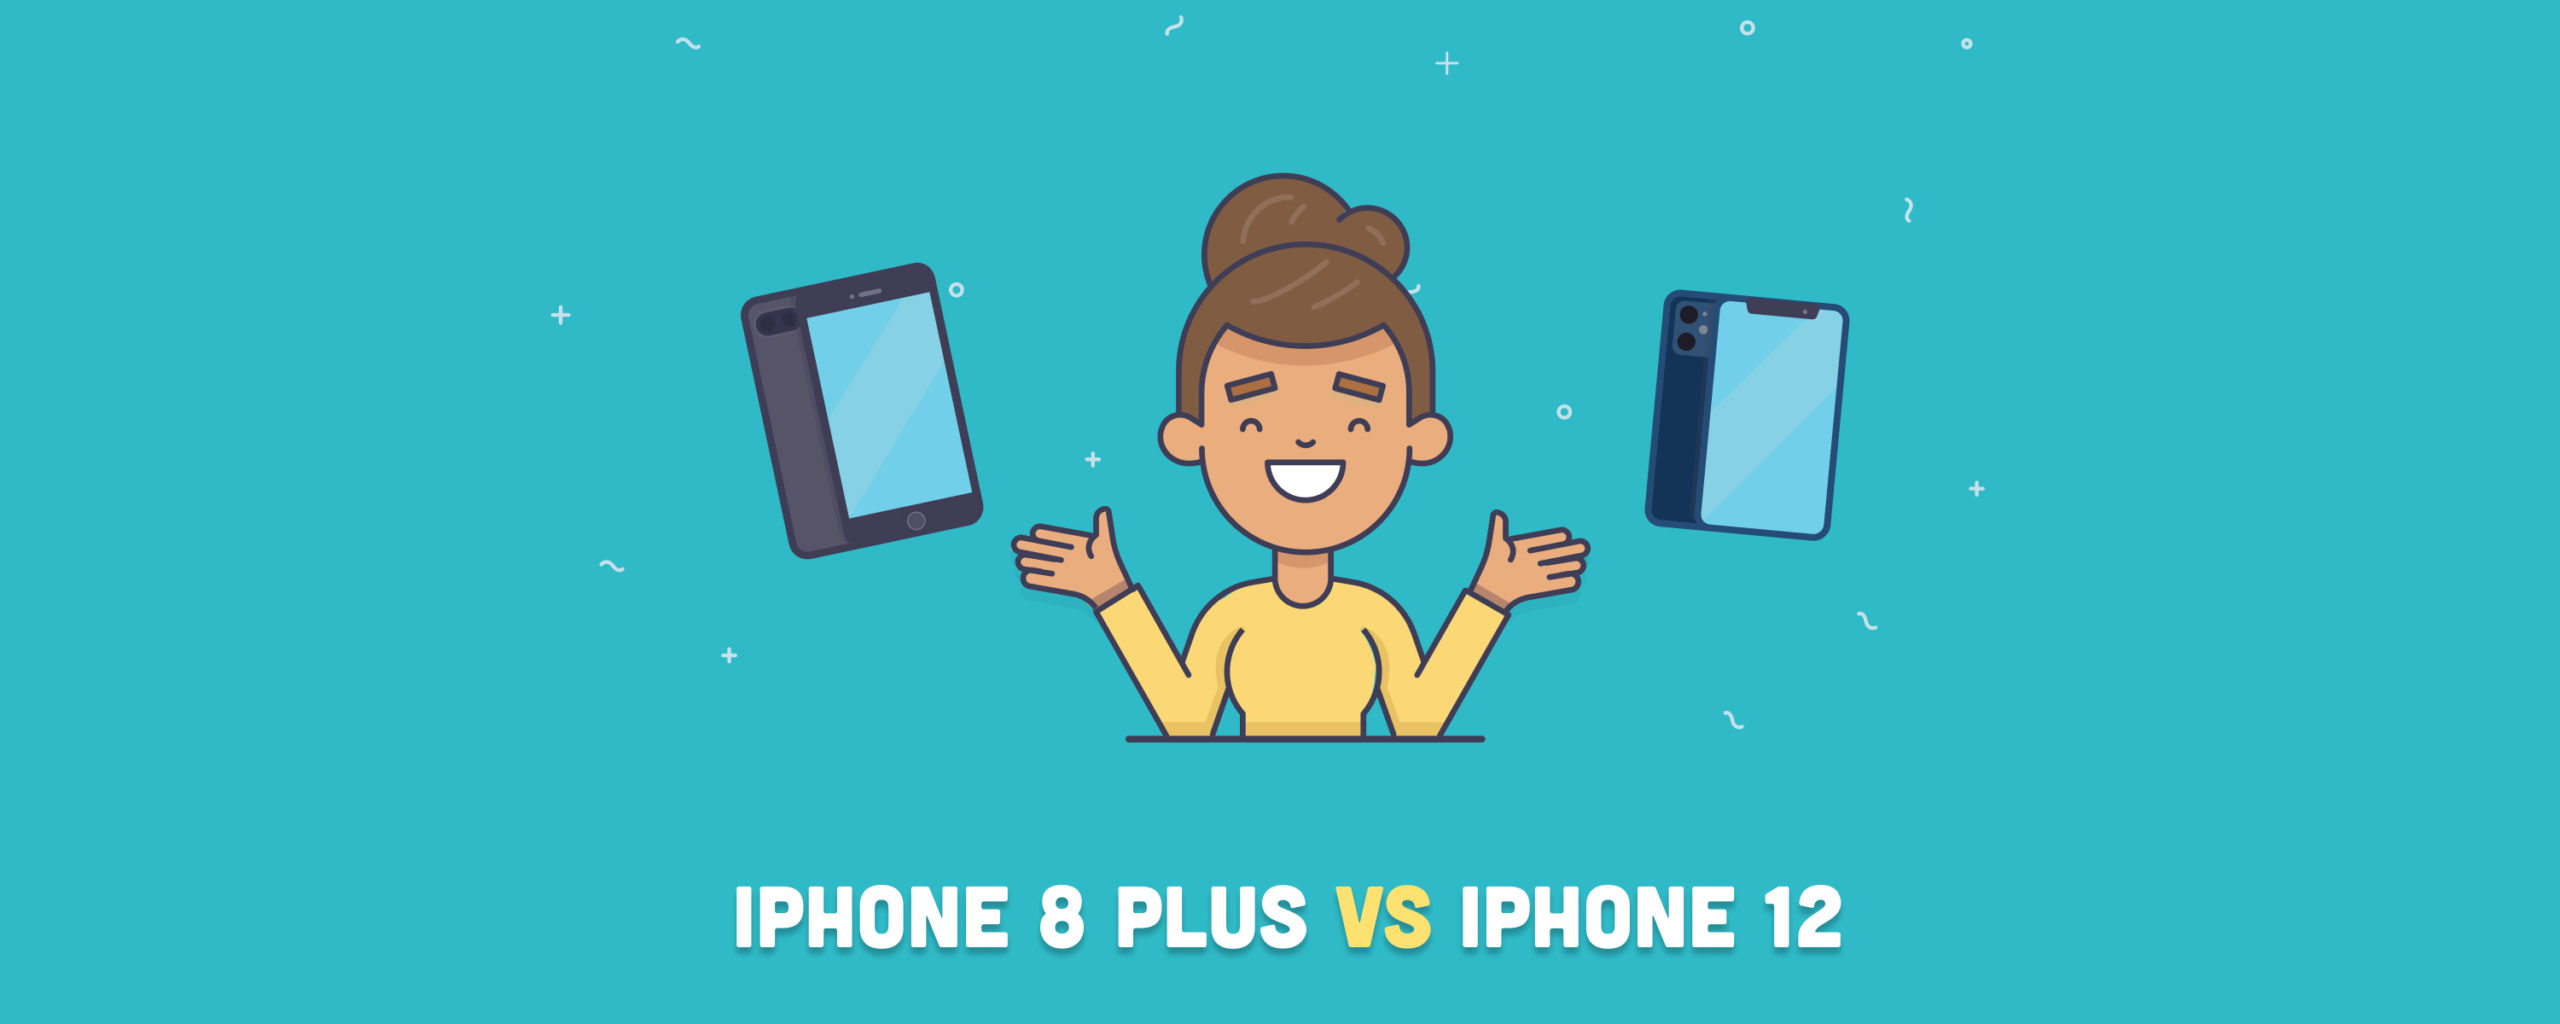 iPhone 8 Plus vs iPhone 12: Do you Need an Upgrade?